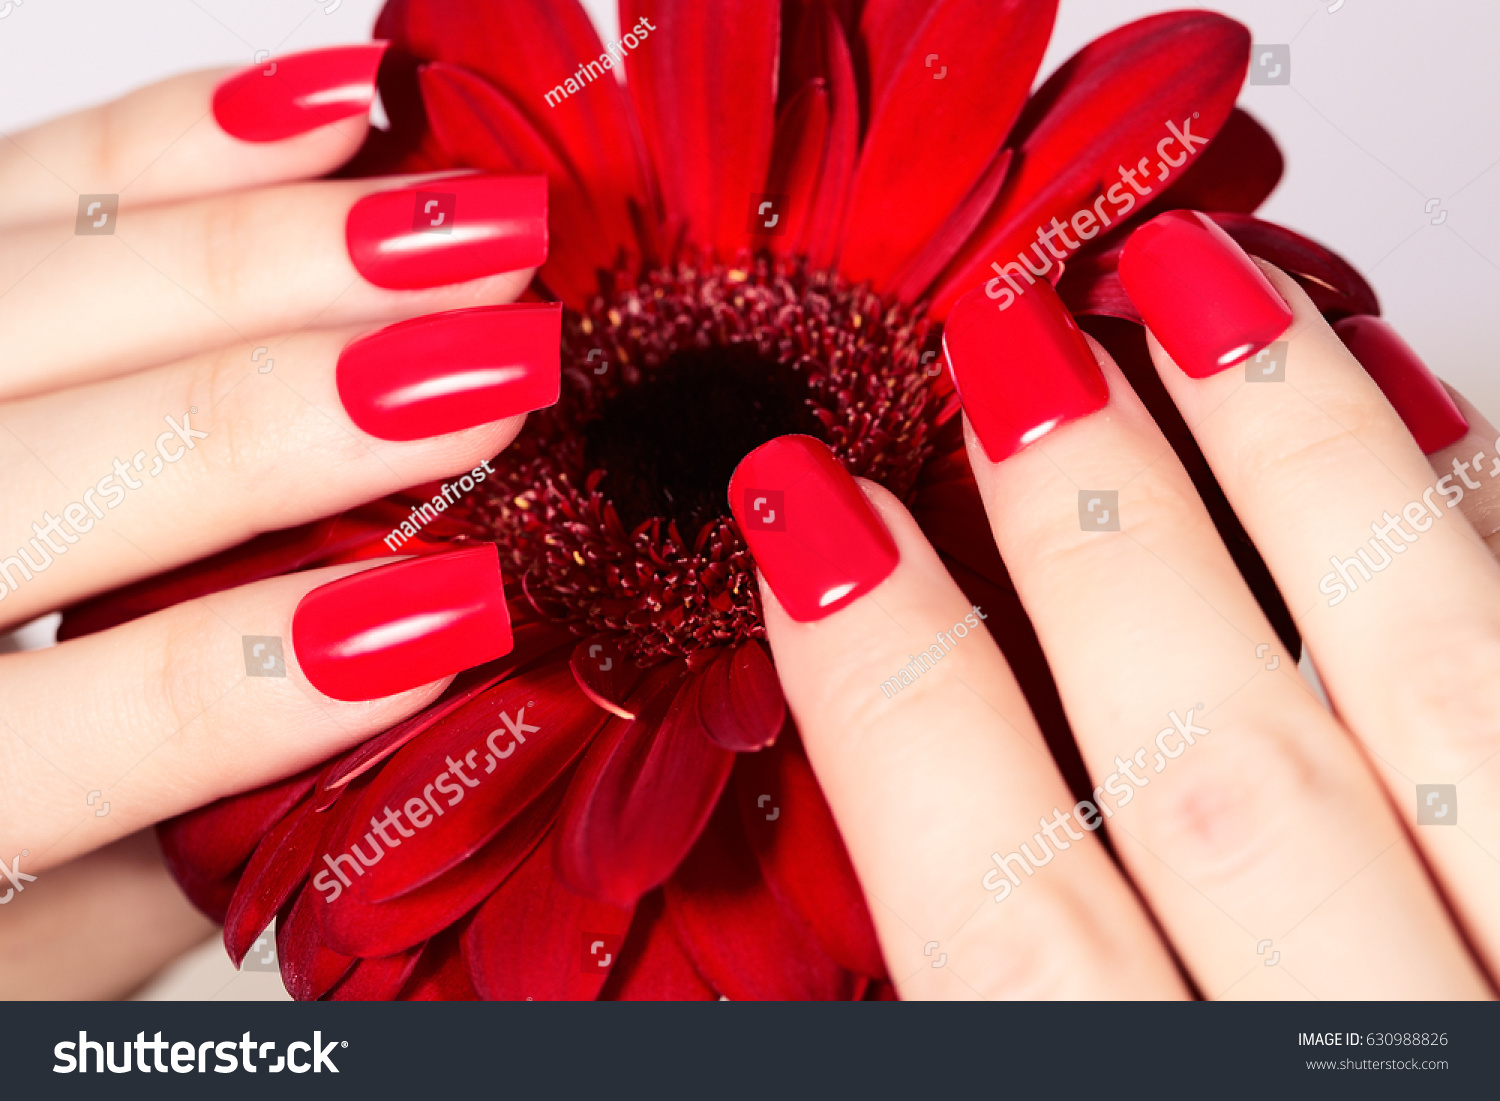 Beauty hands red fashion manicure bright stock photo 100 legal beauty hands with red fashion manicure and bright flower beautiful manicured red polish on nails izmirmasajfo